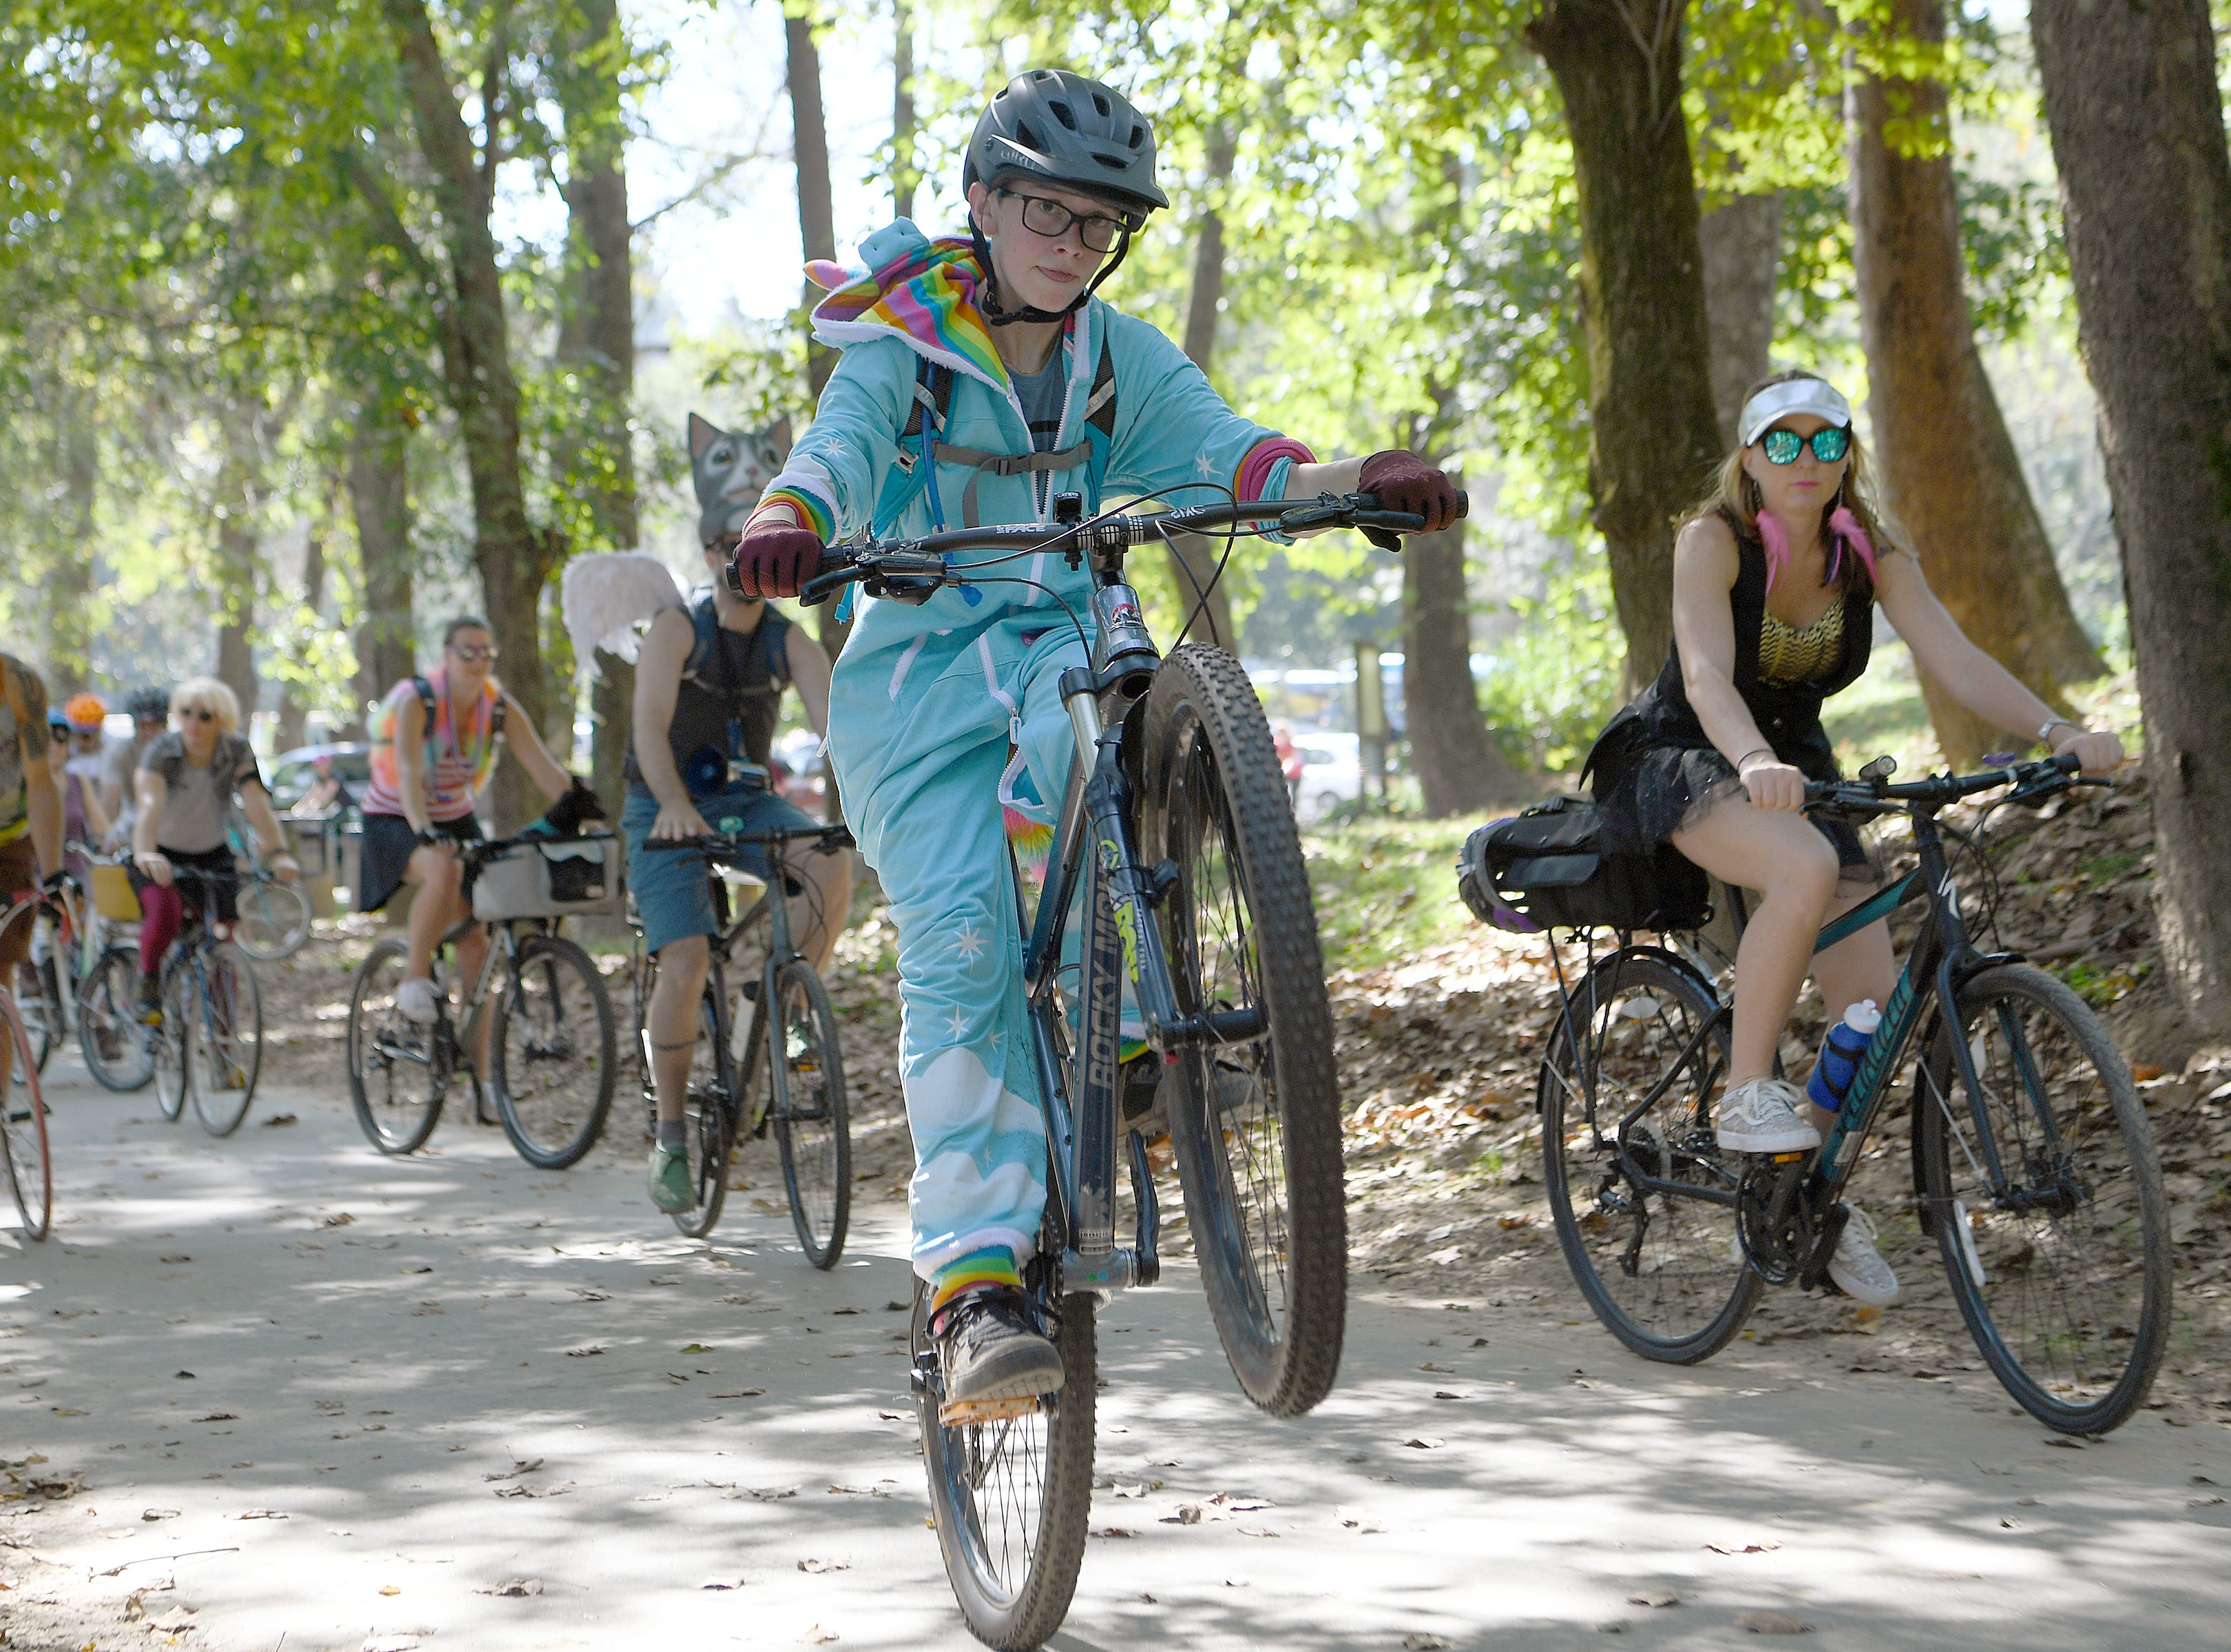 More than 500 cyclists paraded from the French Broad Outfitters at Hominy Creek to New Belgium in the Inaugural Asheville on Bikes and New Belgium Tour de Fat Bike Parade on Sept. 22, 2018.